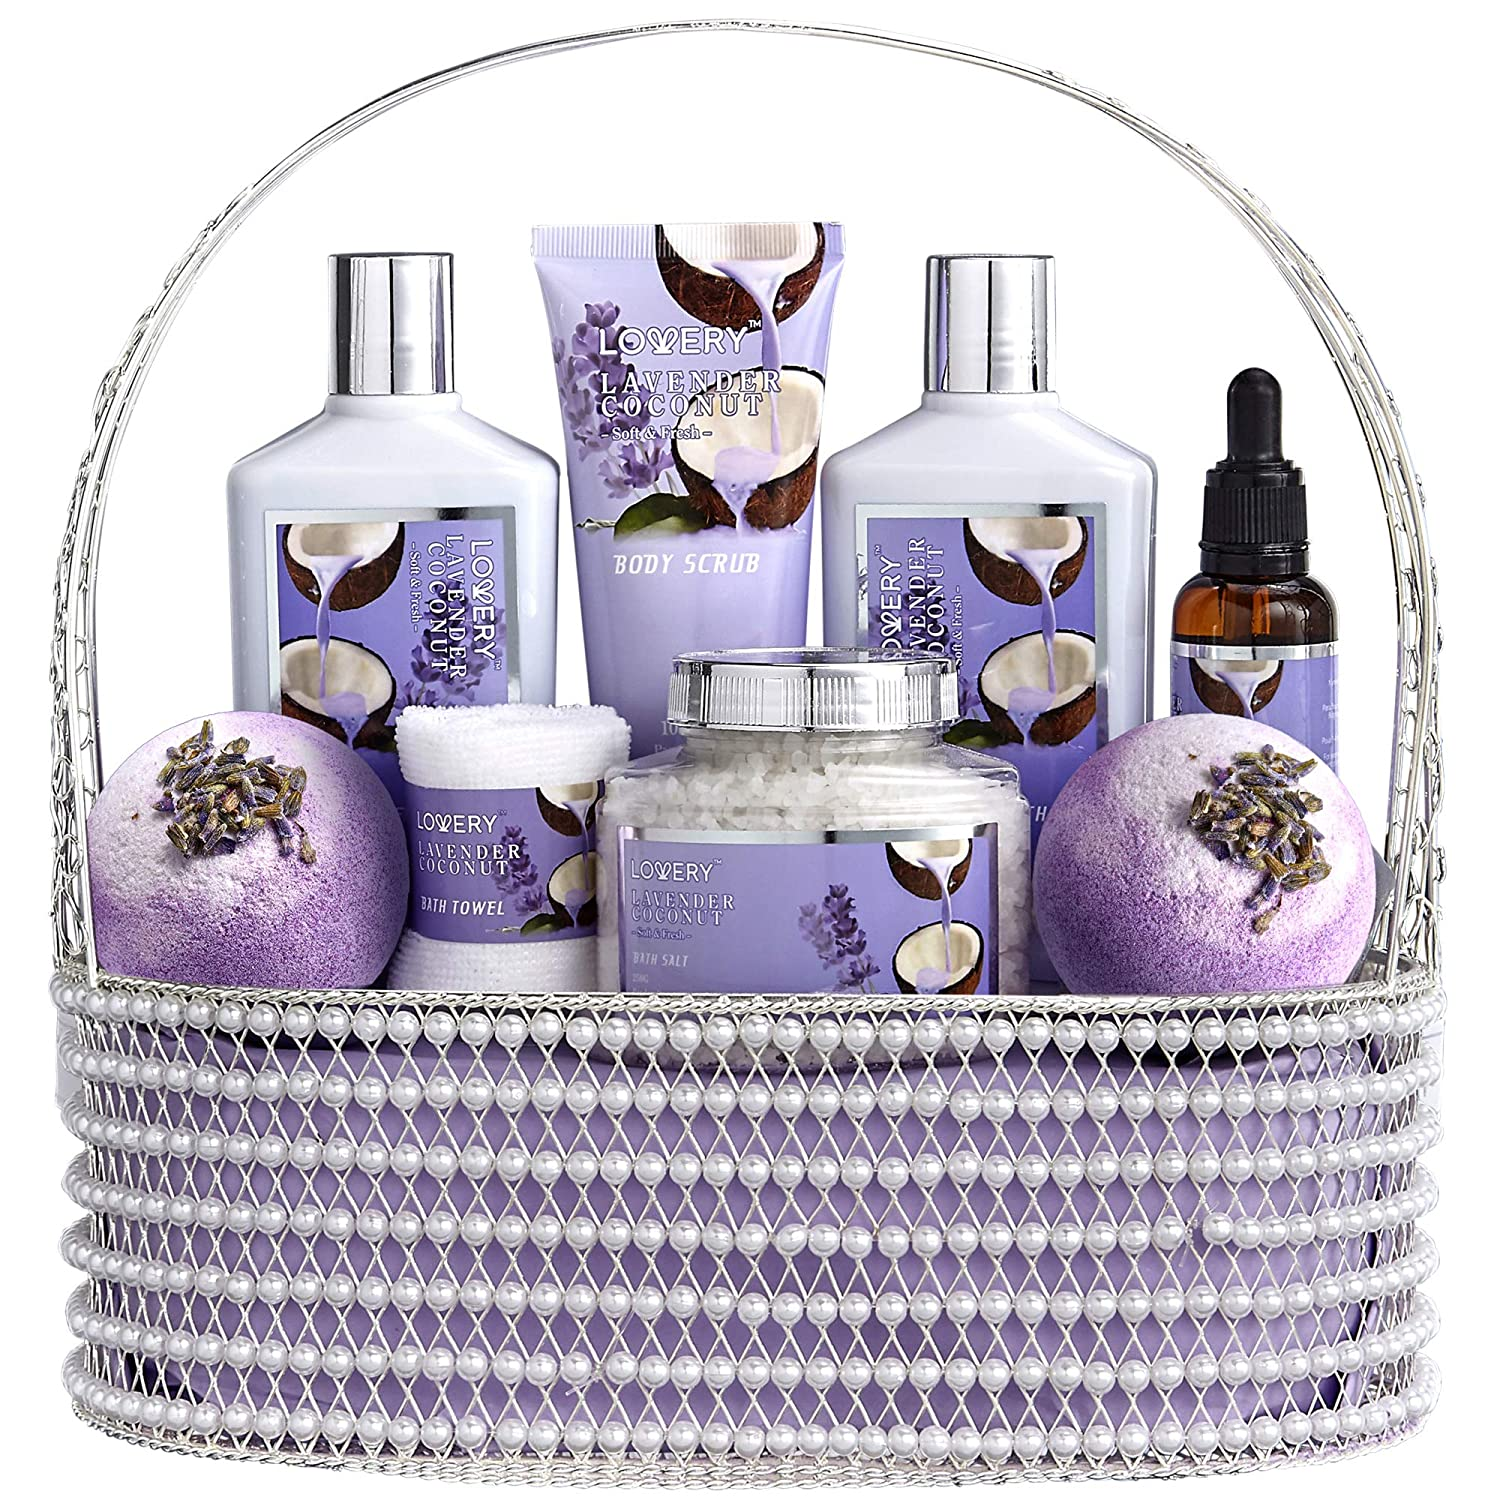 Home Spa Gift Baskets for Women & Men - Bath and Body Gift Basket – Deluxe Spa Set of Lavender Coconut, Includes Bath Salt, Extra Large Bath Bombs, Bath Oil & More - Wrapped in a Handmade Pearl Basket